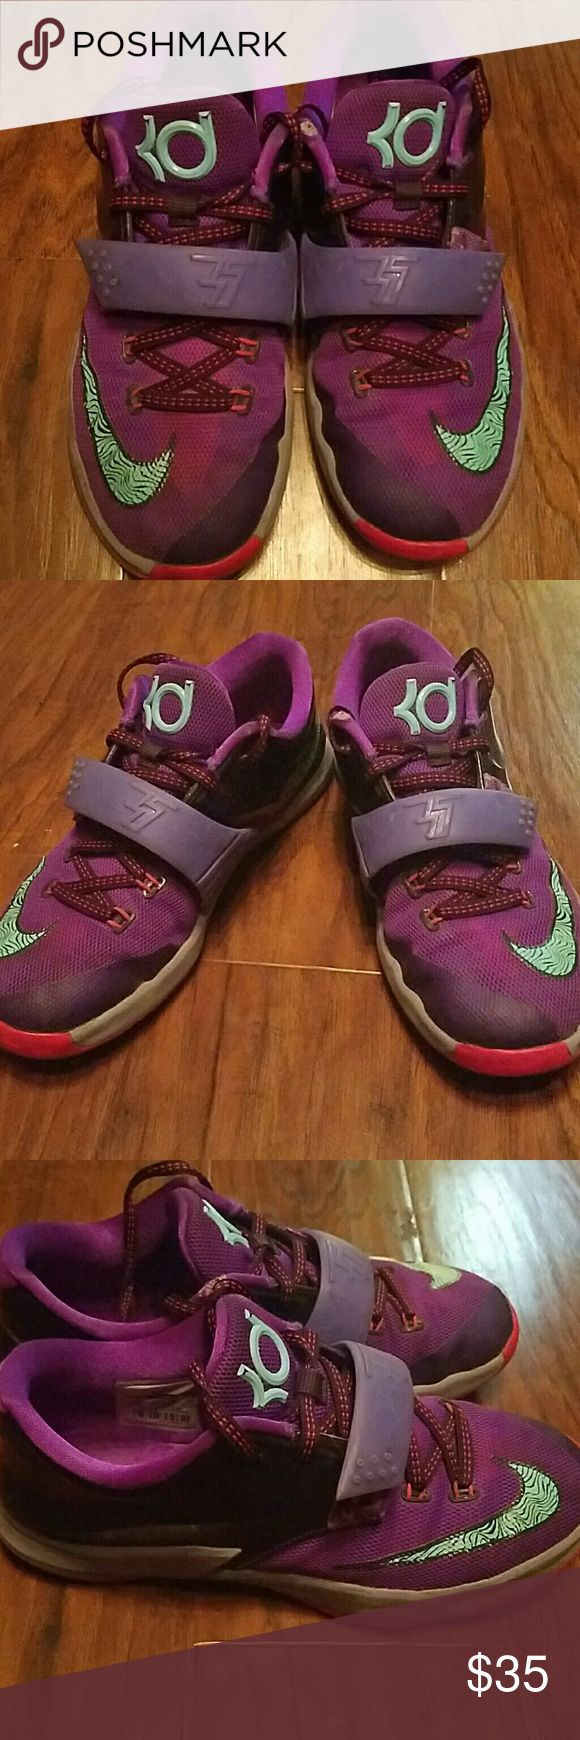 KD shoes Purple KD shoes very worn great for little boys play shoes kd Shoes Sneakers